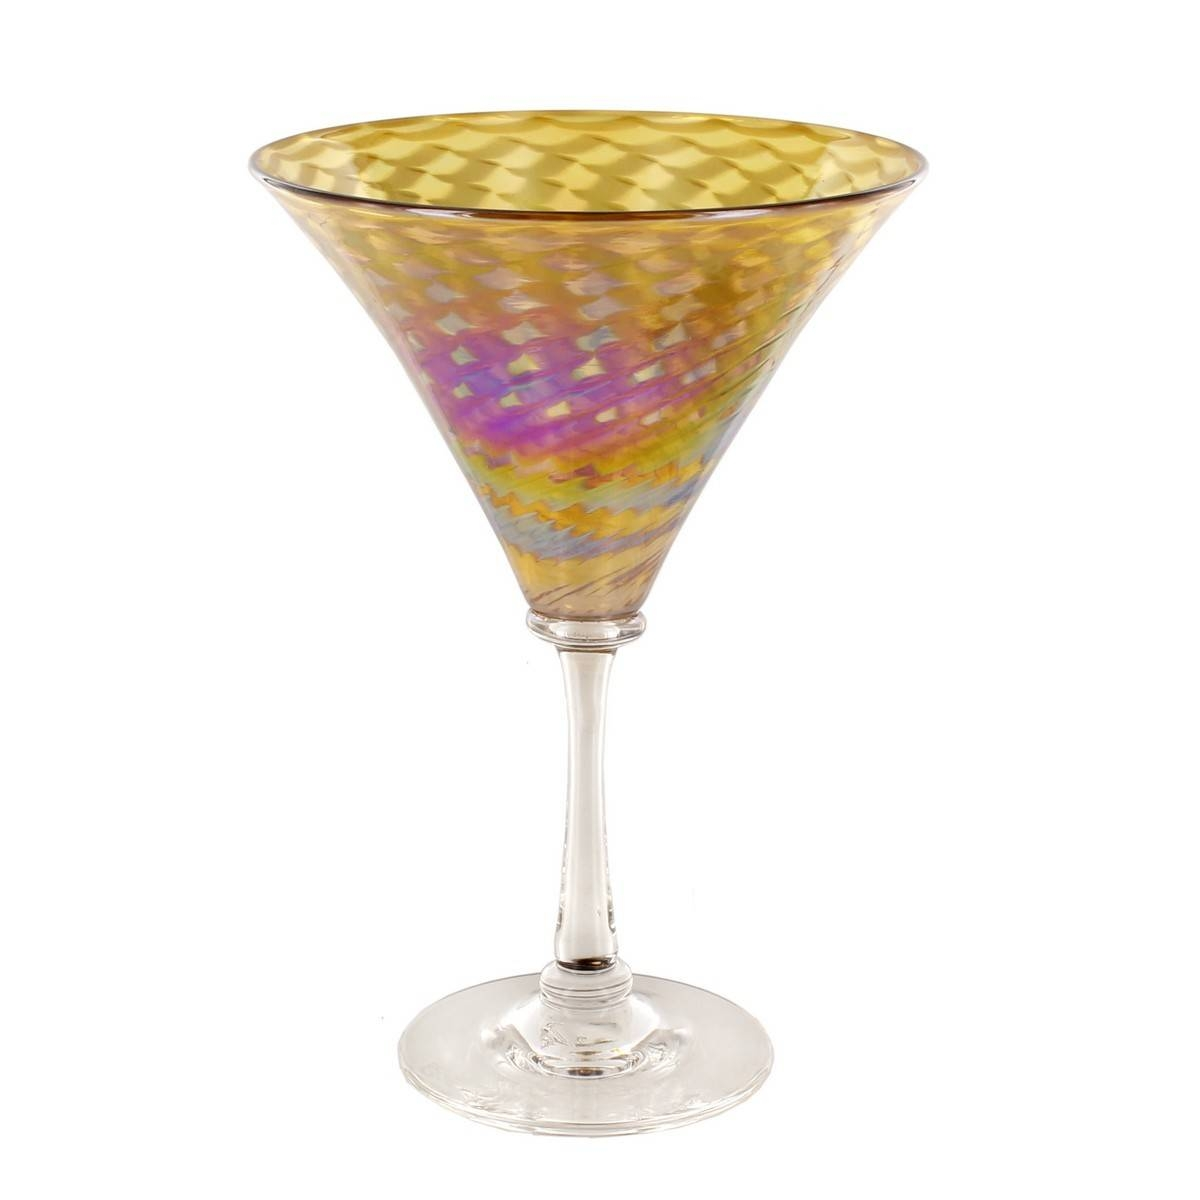 Art Glass – Fire And Ice Intended For Most Current Martini Metal Wall Art (View 27 of 30)